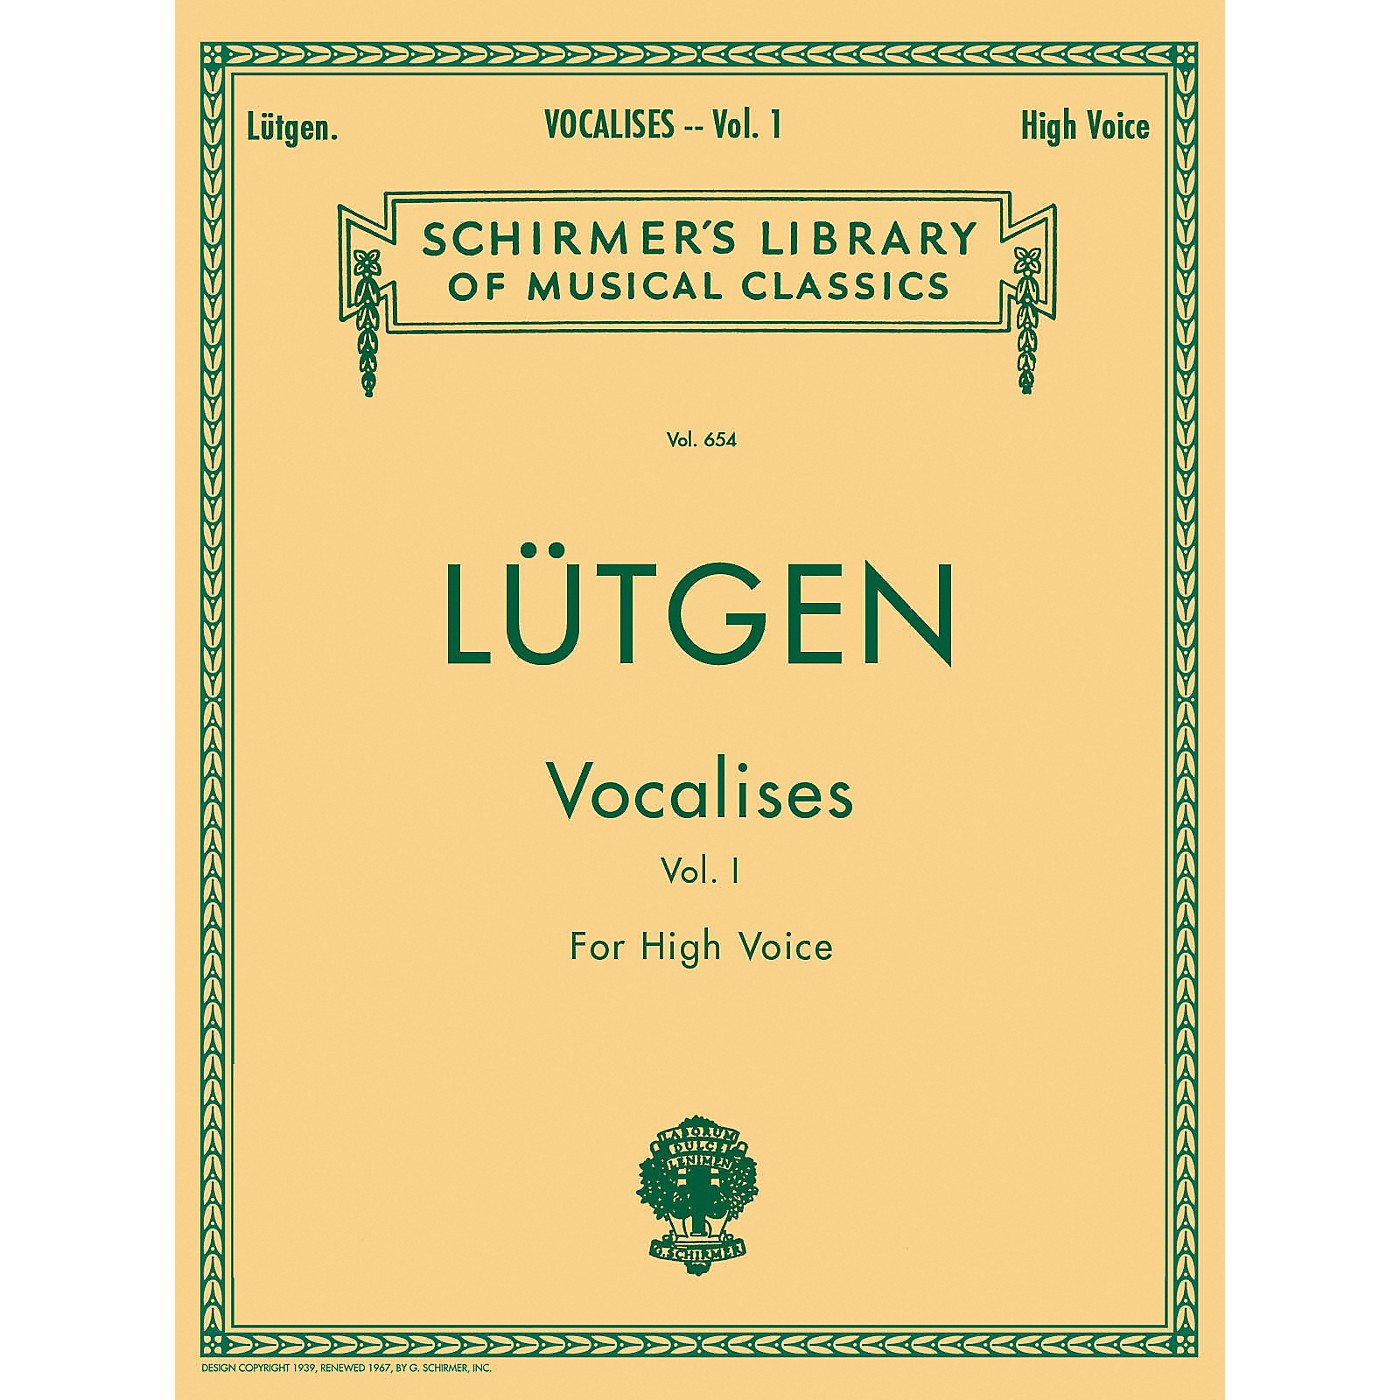 G. Schirmer Vocalises (20 Daily Exercises) - Book I for High Voice By L¼tgen thumbnail